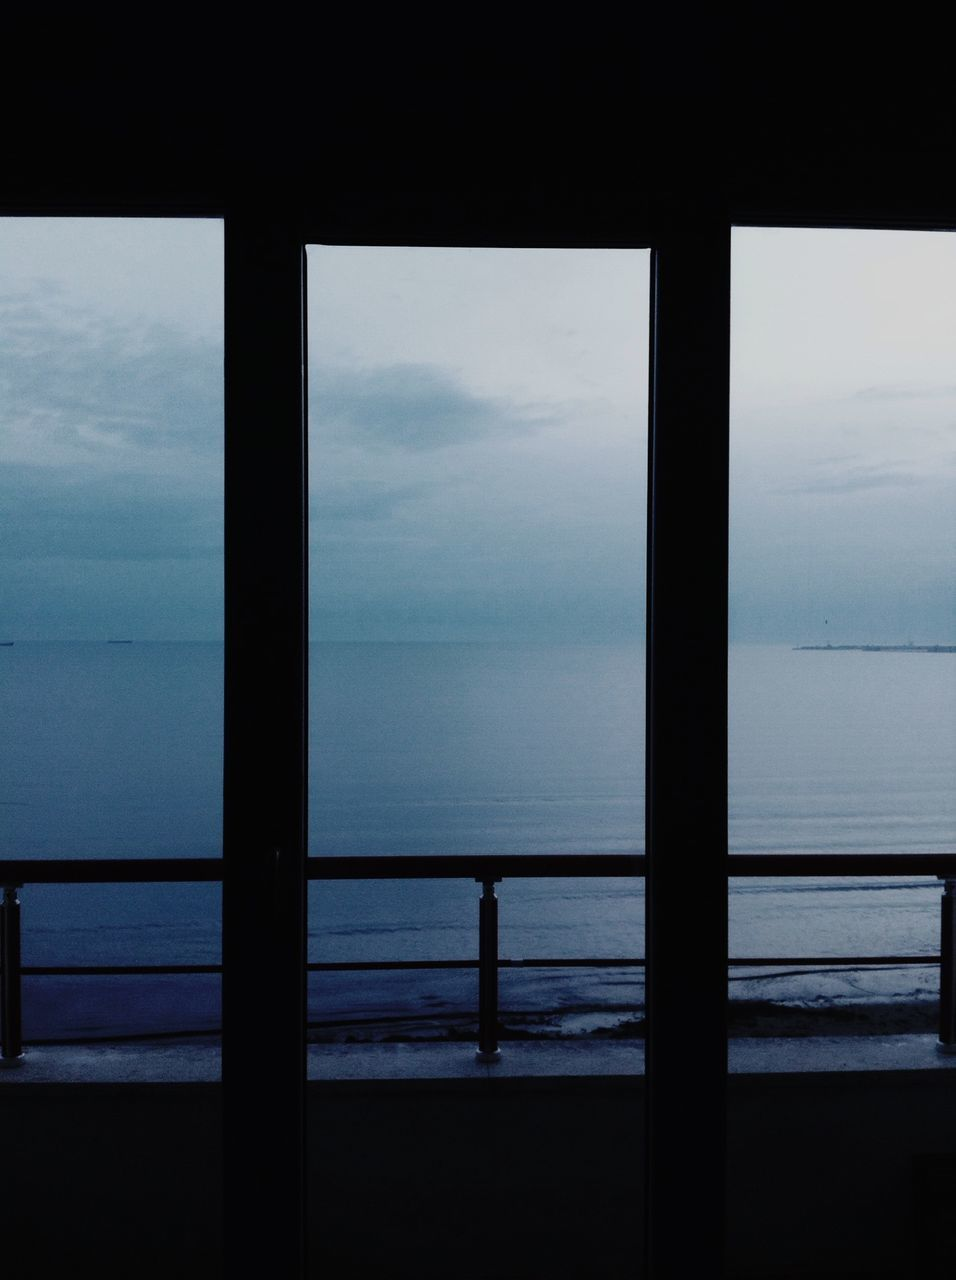 Calm Blue Sea Seen Through Window